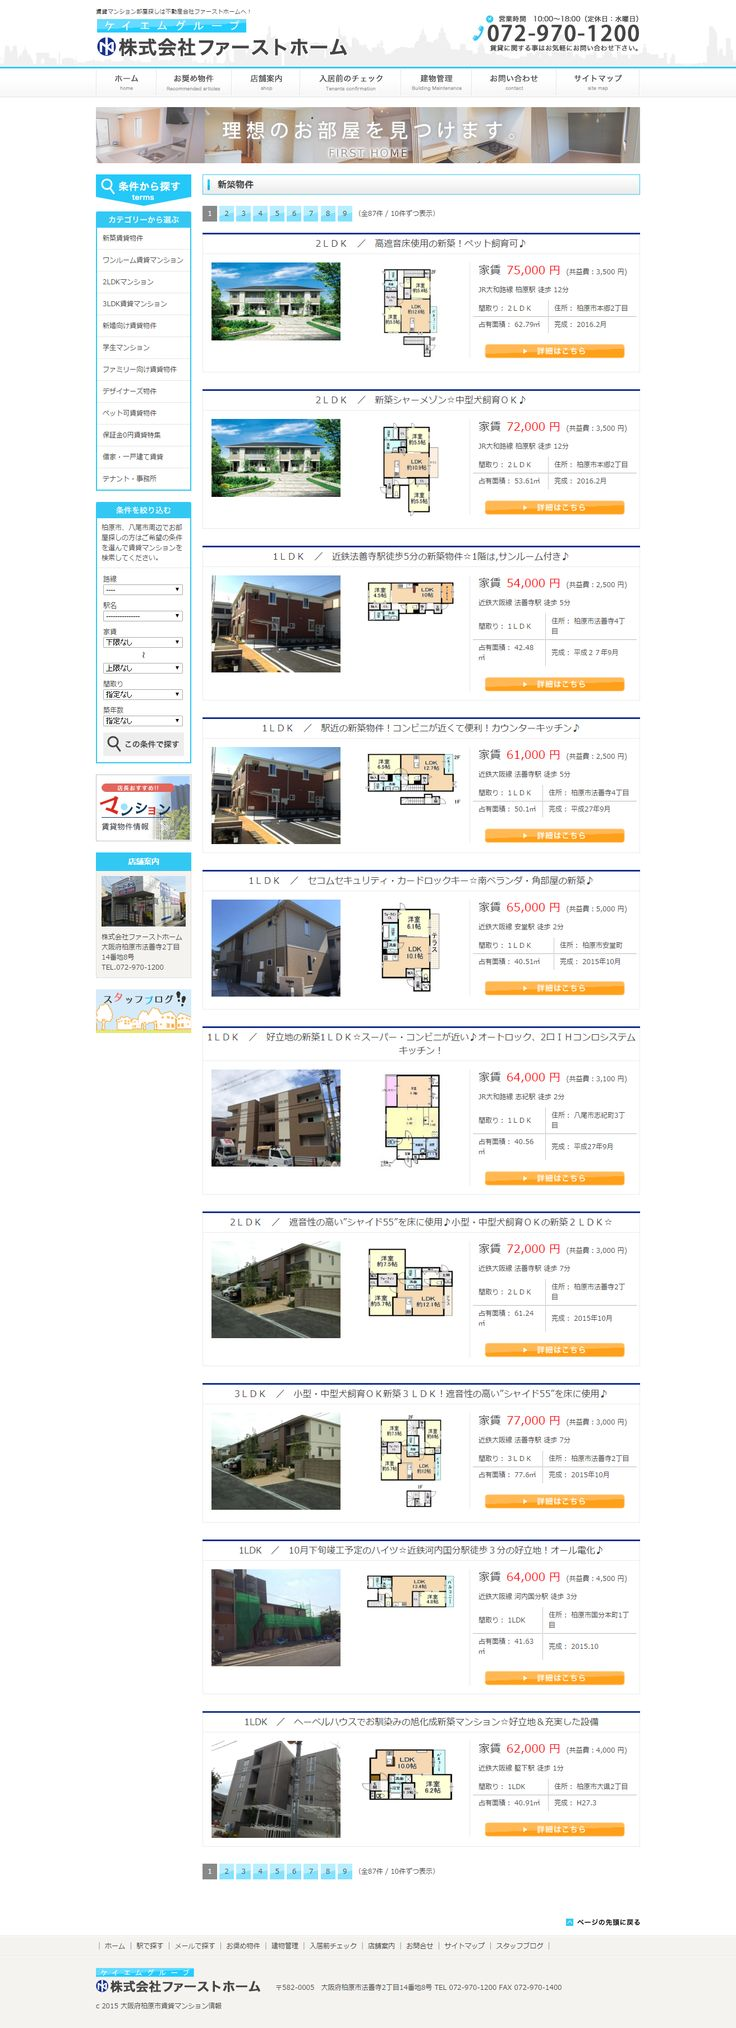 http://www.firsthome1.com/chintai/list.php?category=2